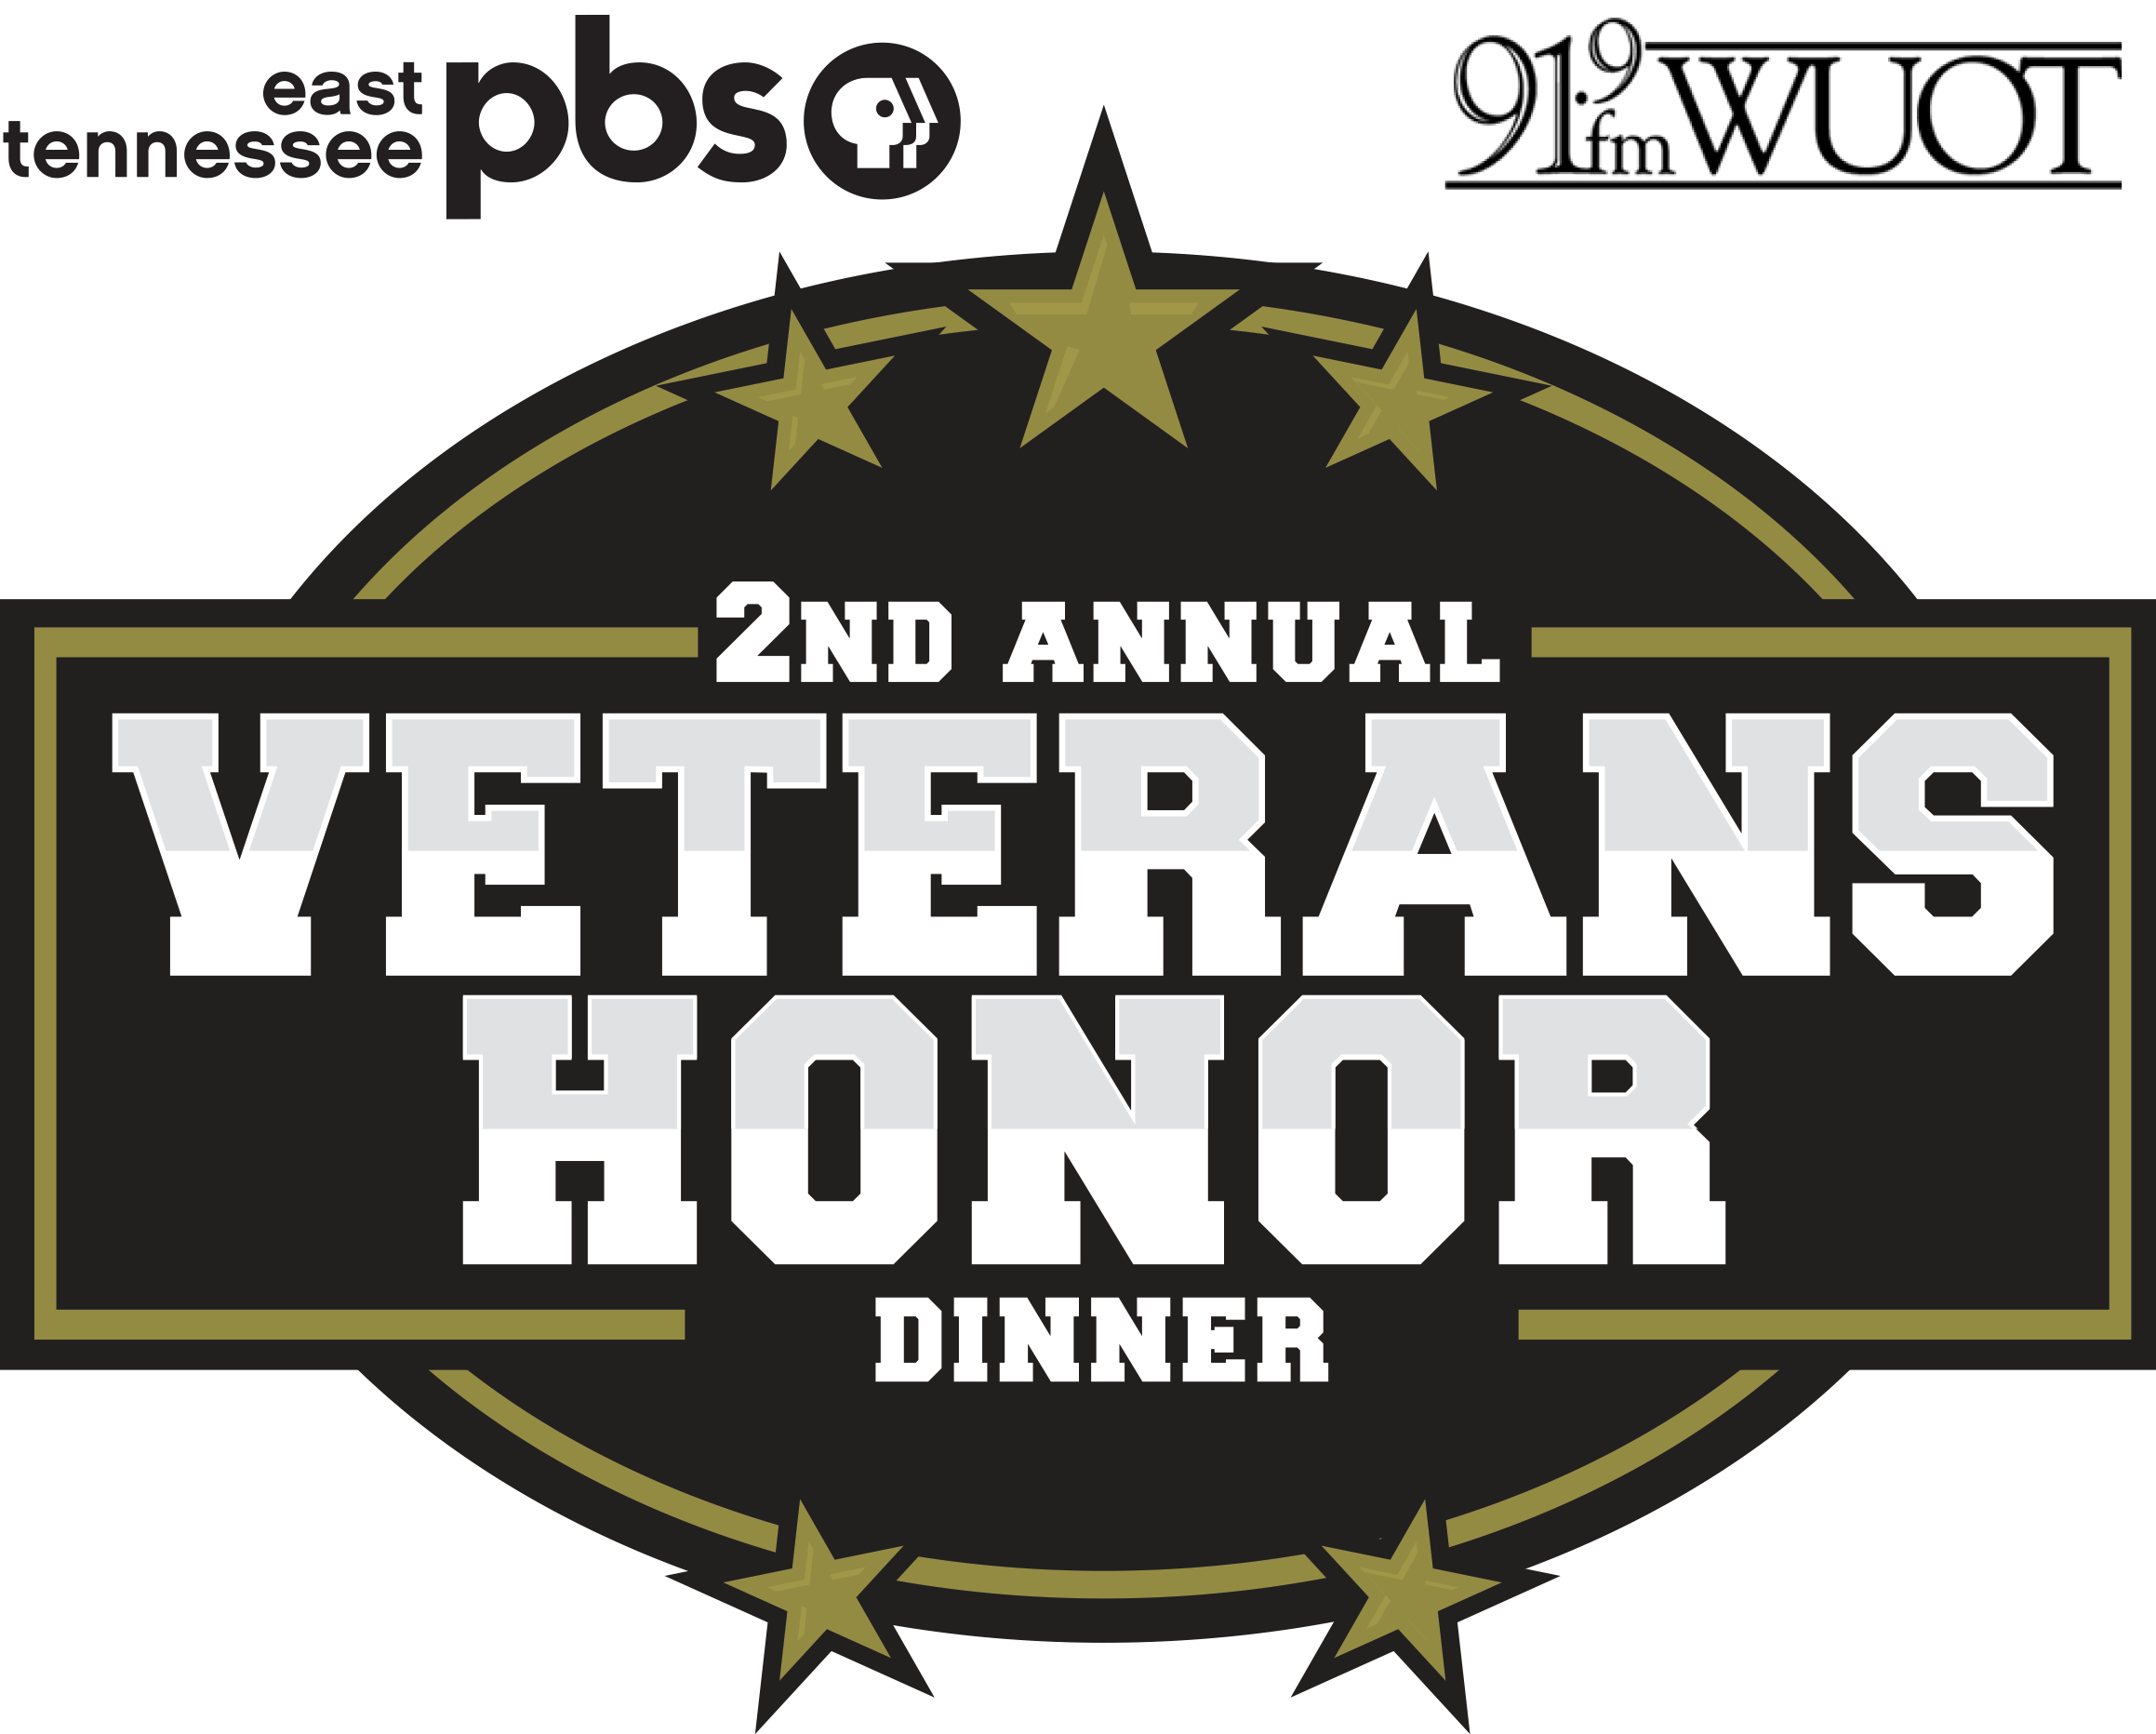 2nd Annual Veterans Honor Dinner - Oct. 11 at Bridgewater Place